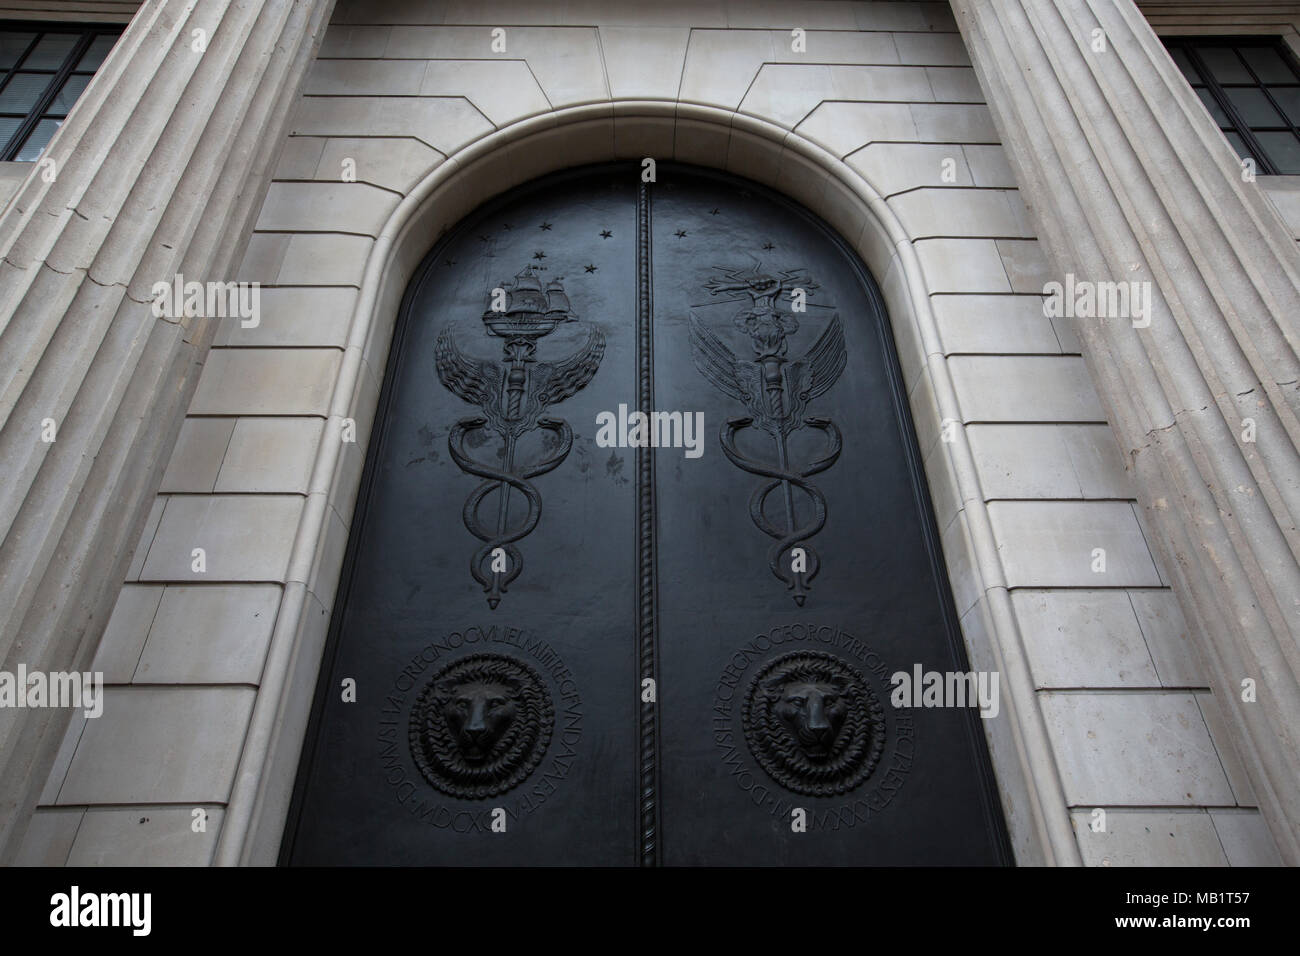 Bank of England doors, Threadneedle Street, the anti-terrorist doors made in Wales by engineering firm Cyrus-RW Group and Rhino Doors, City of London - Stock Image